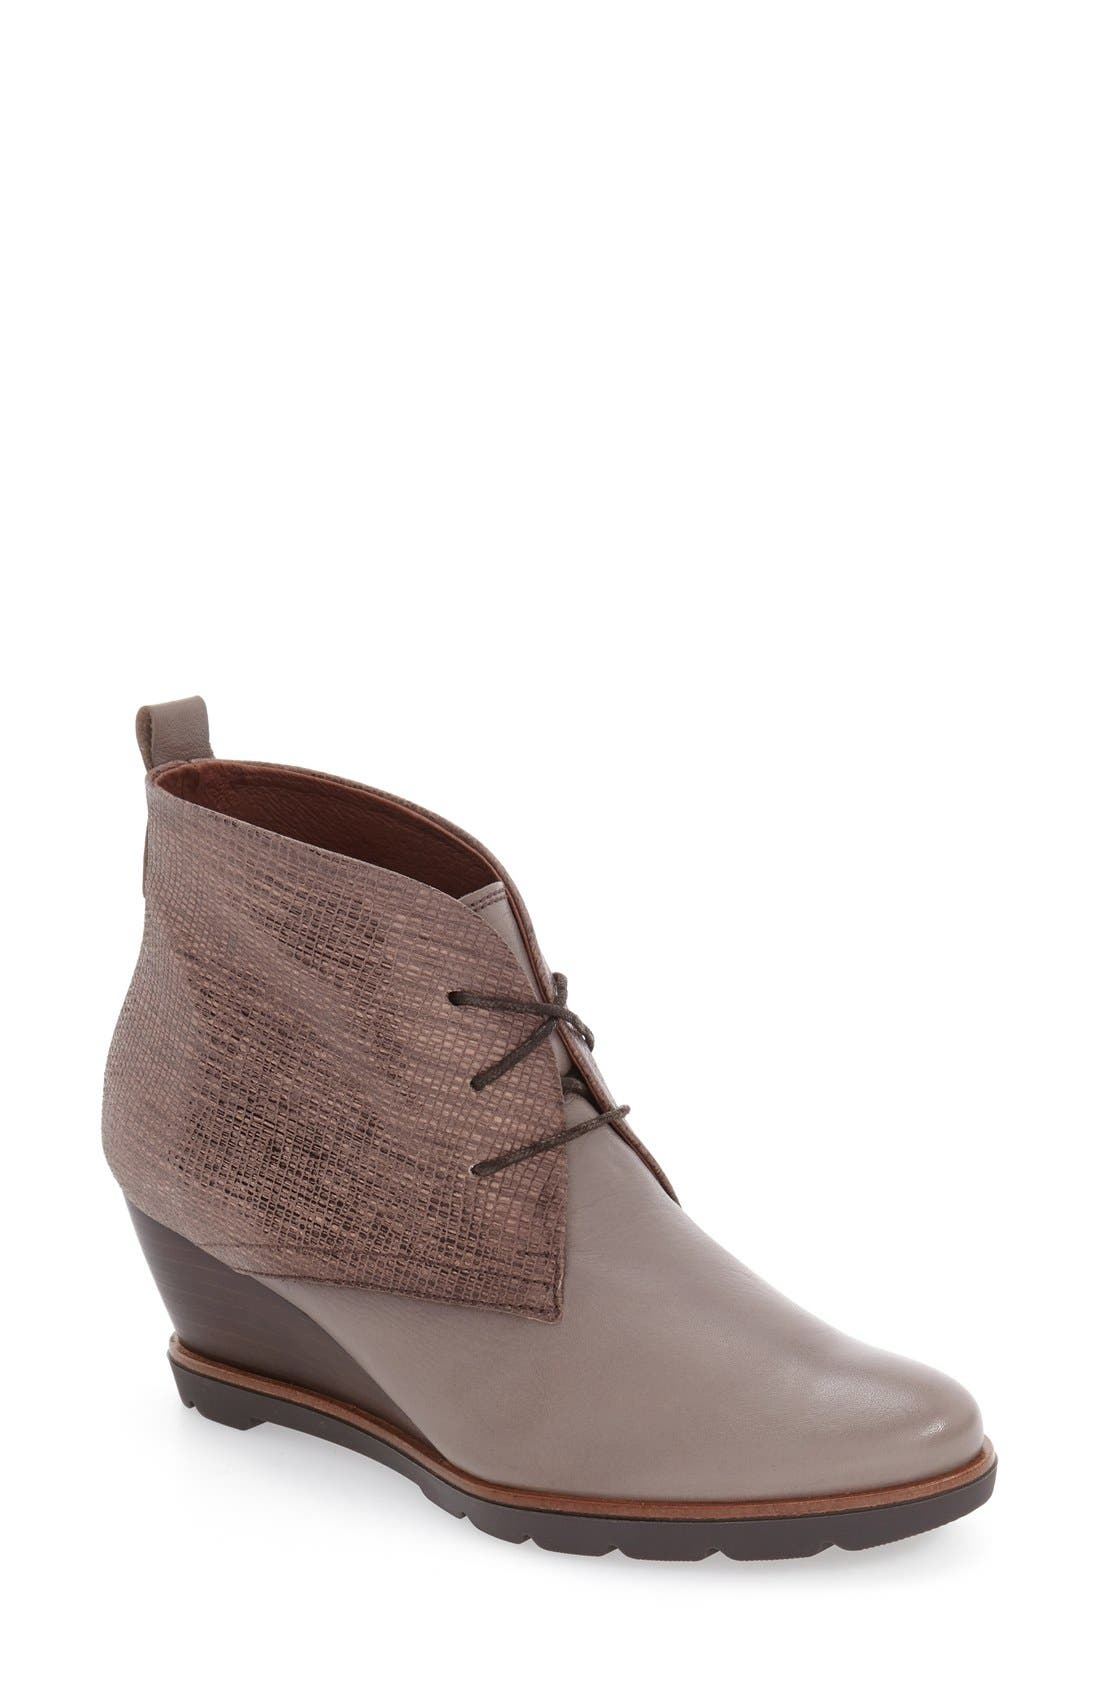 'Harmonie' Lace-Up Wedge Bootie,                         Main,                         color, 200